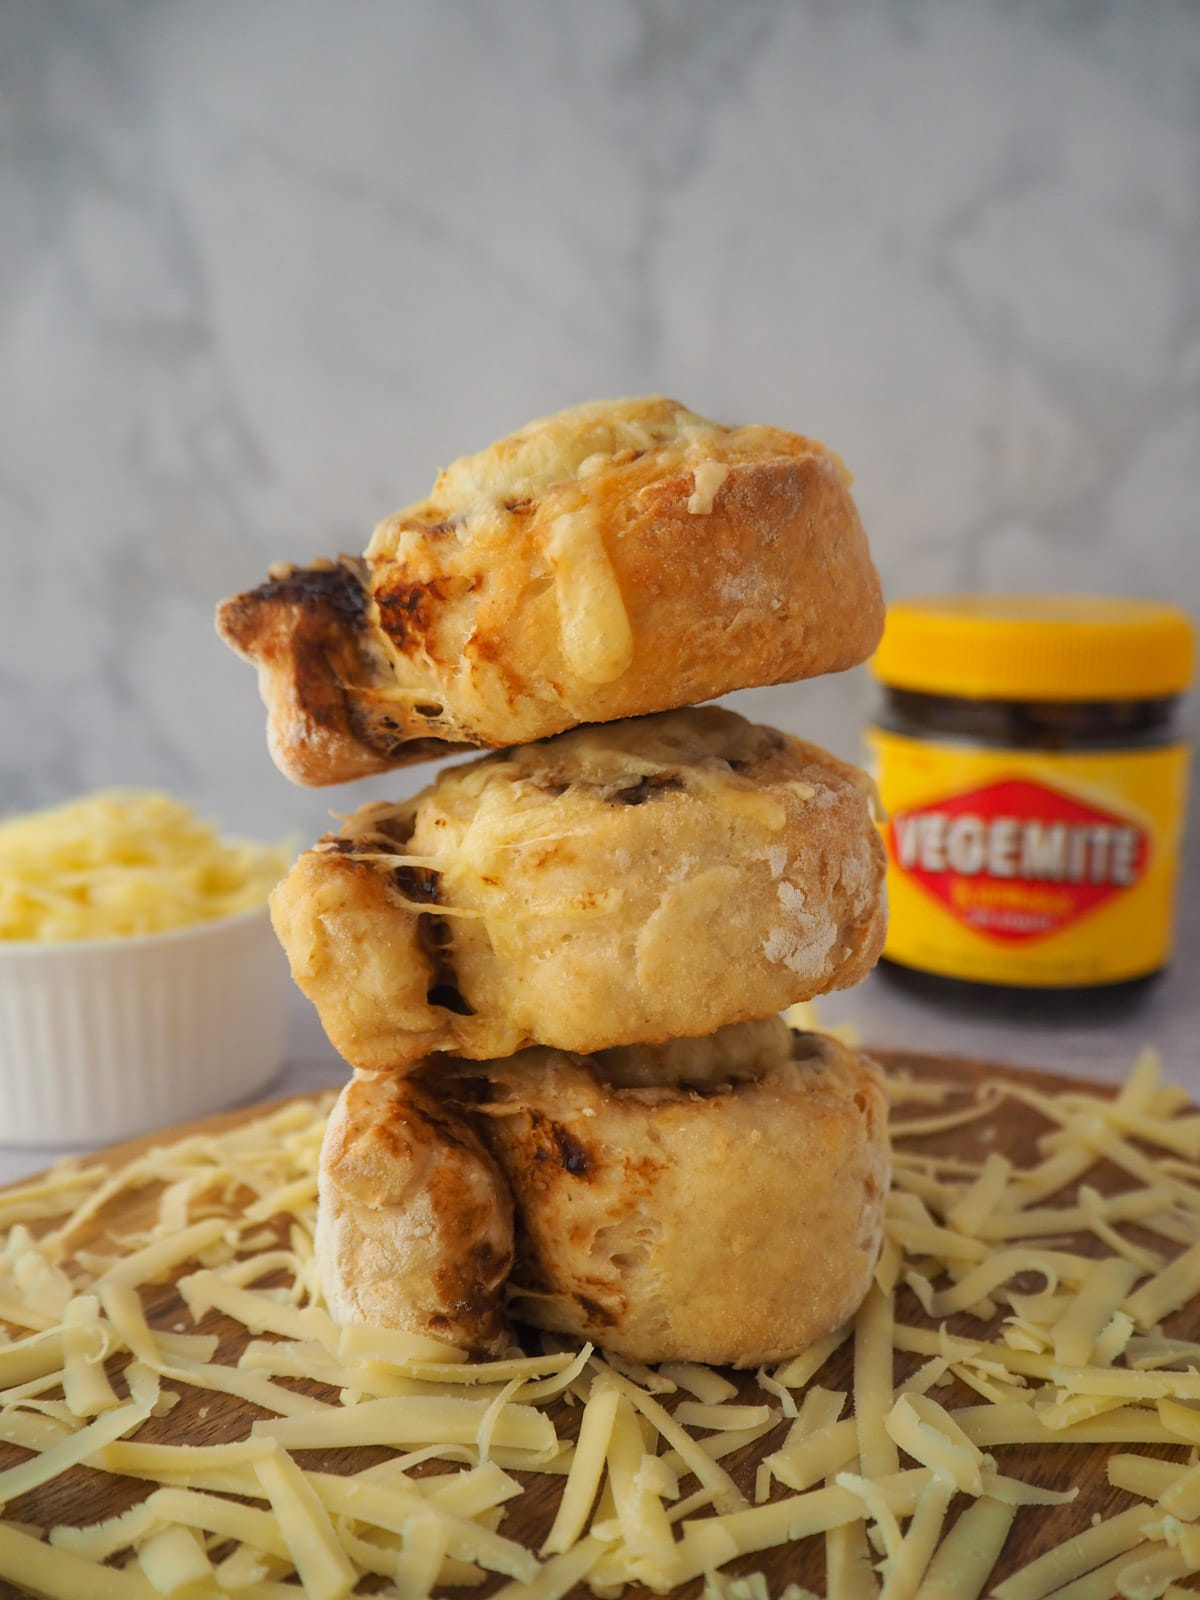 Stack of scrolls surrounded by grated cheese, with bowl of grated cheese and jar of vegemite in the background.